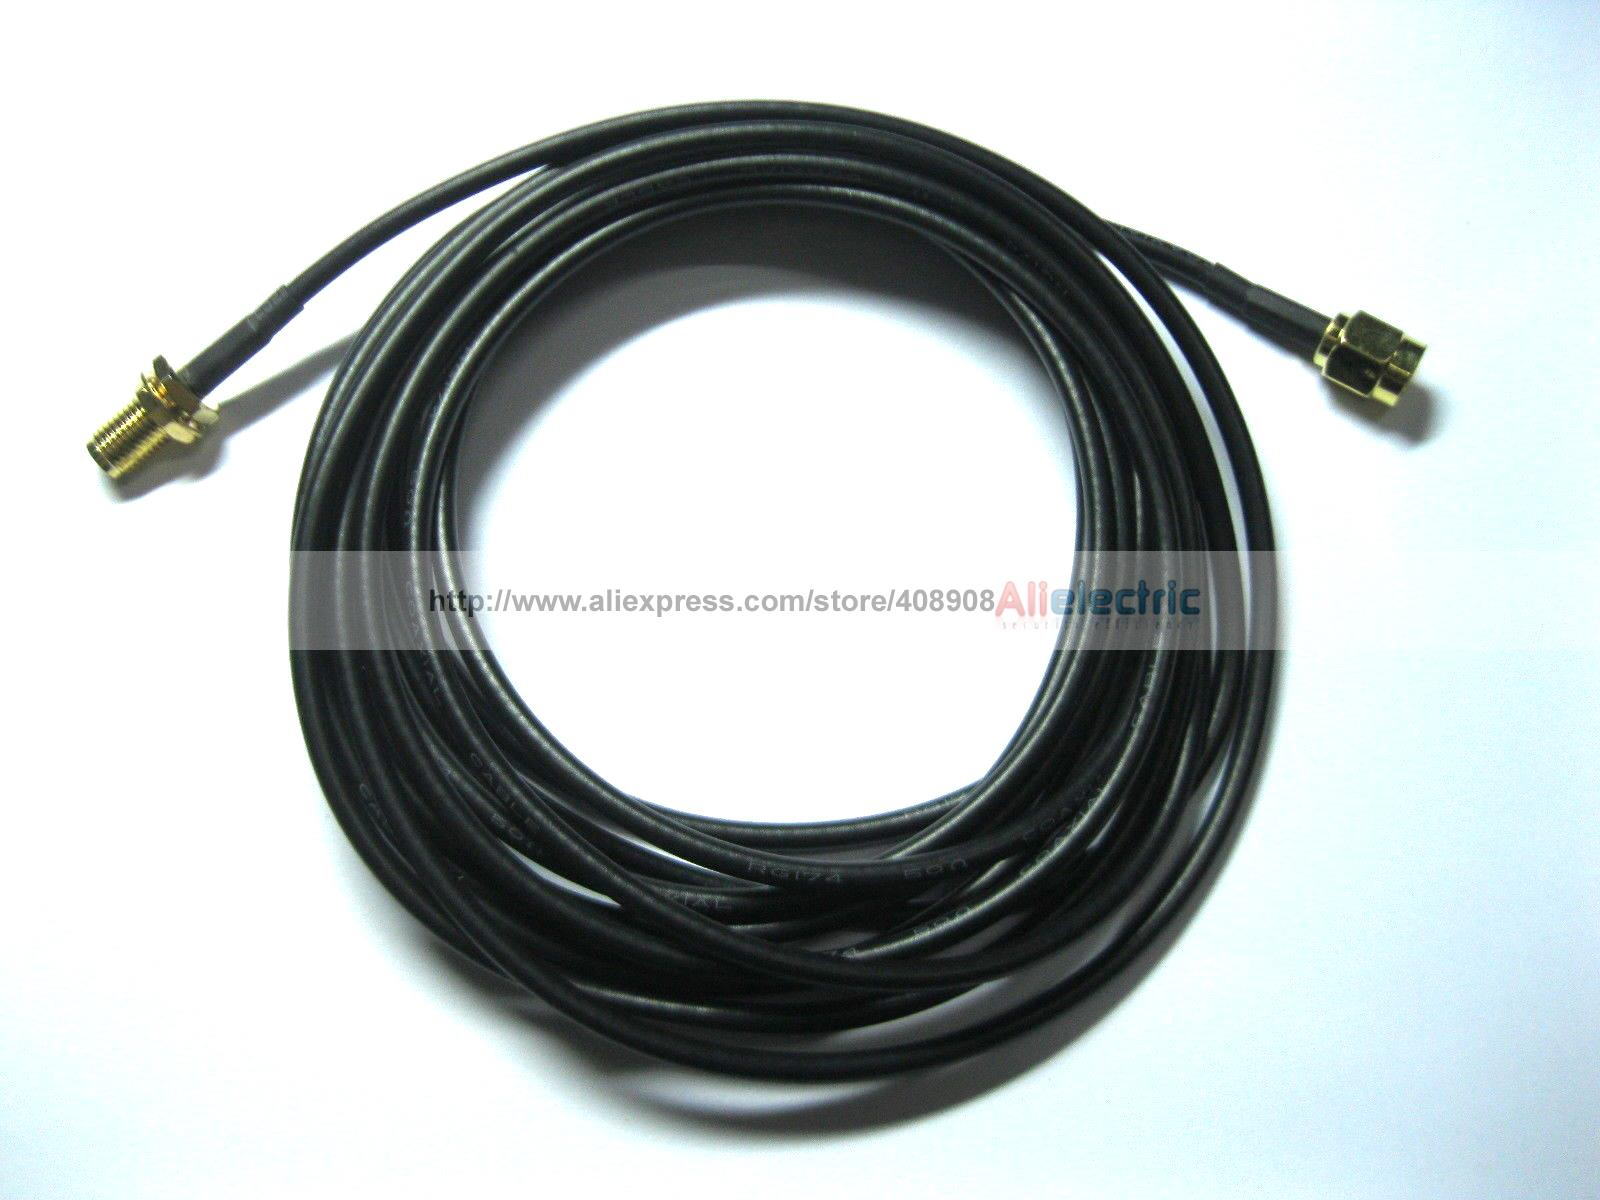 все цены на 12 Pcs 3M Antenna RP SMA Coaxial Cable for WiFi Router Black 300cm онлайн